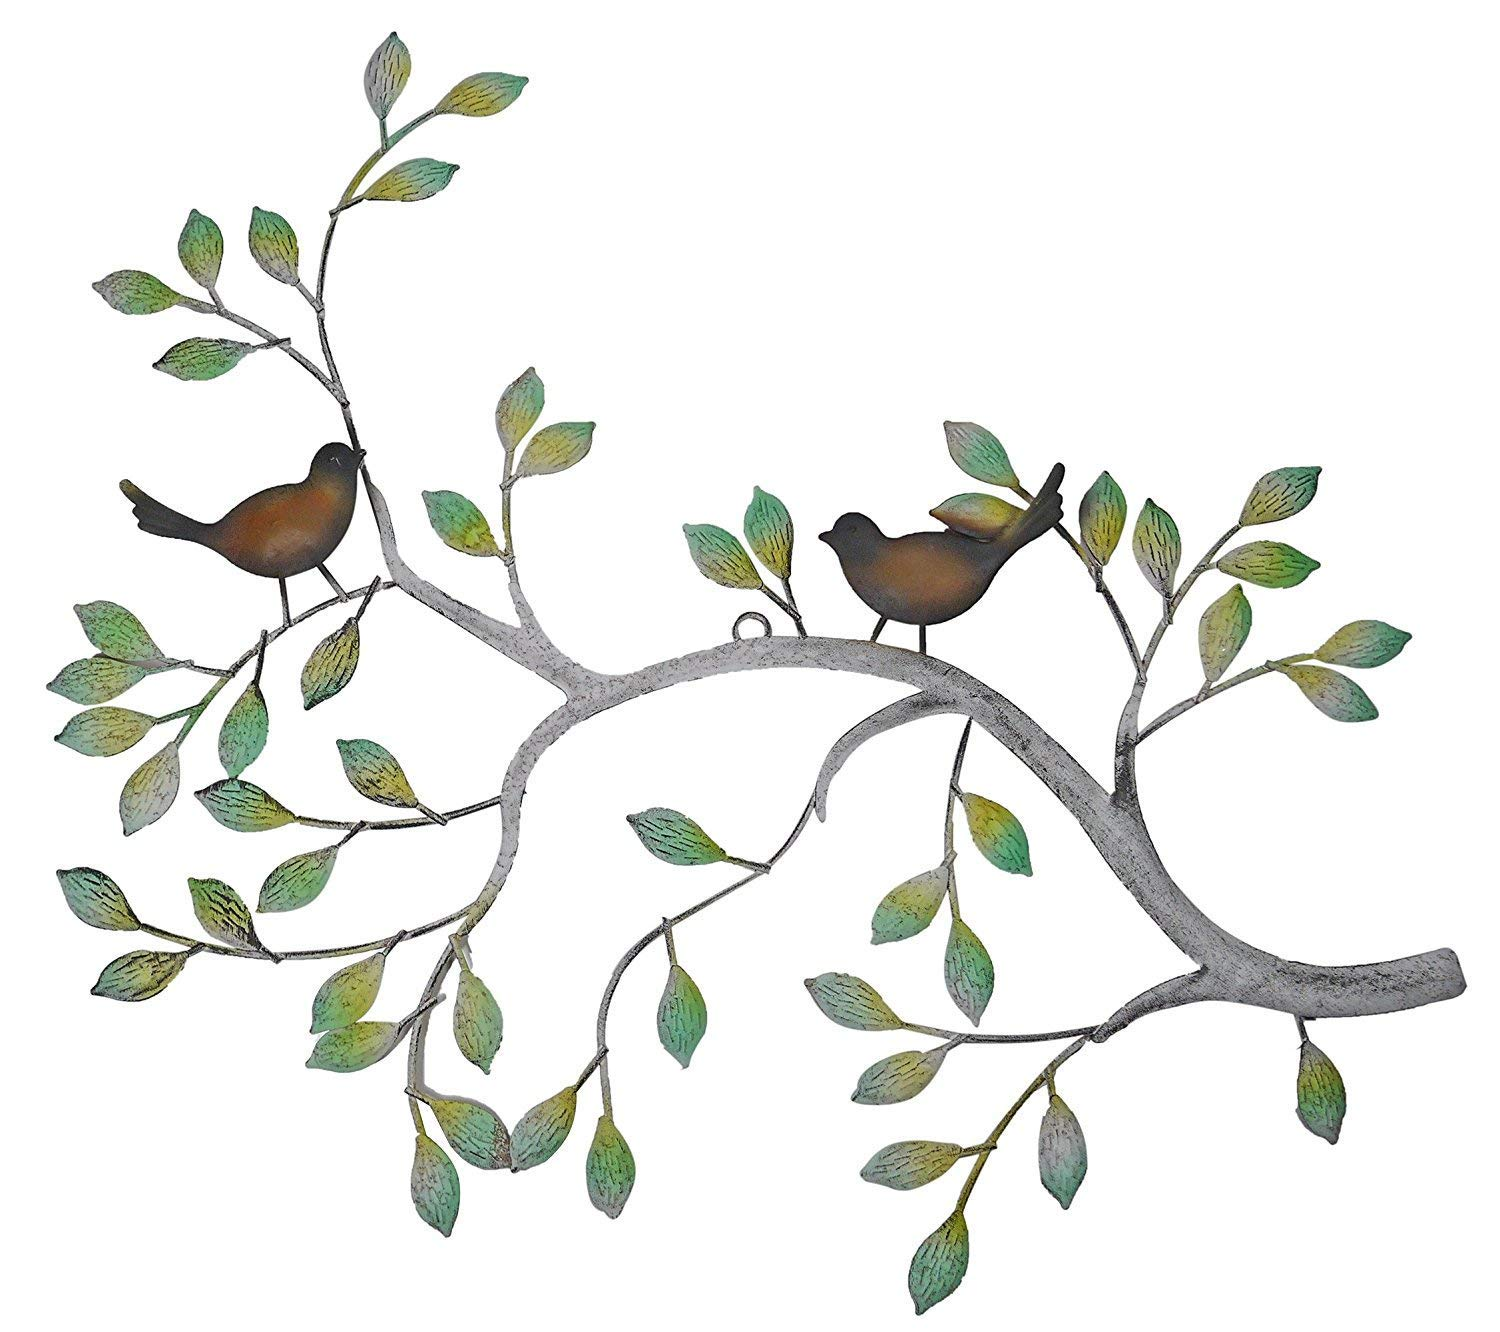 24 in Branches w/Birds Decorative Metal Wall Decor Sculpture Kitchen Home Indoor by PSW - Wall Decor